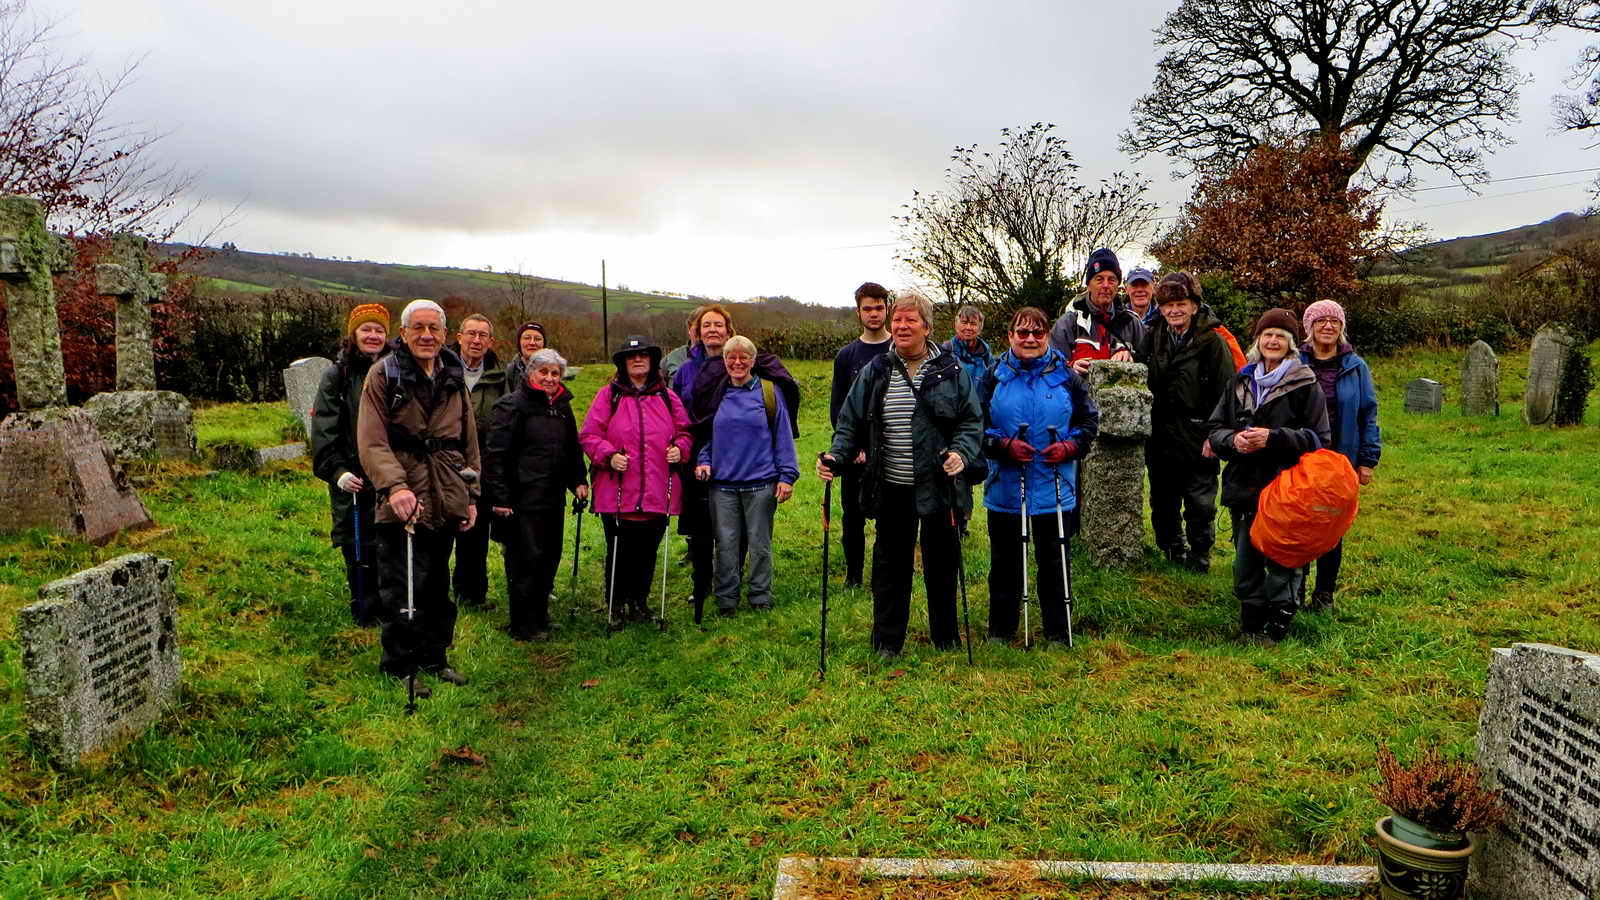 Some of the group of 34 made it as far as the churchyard and the church